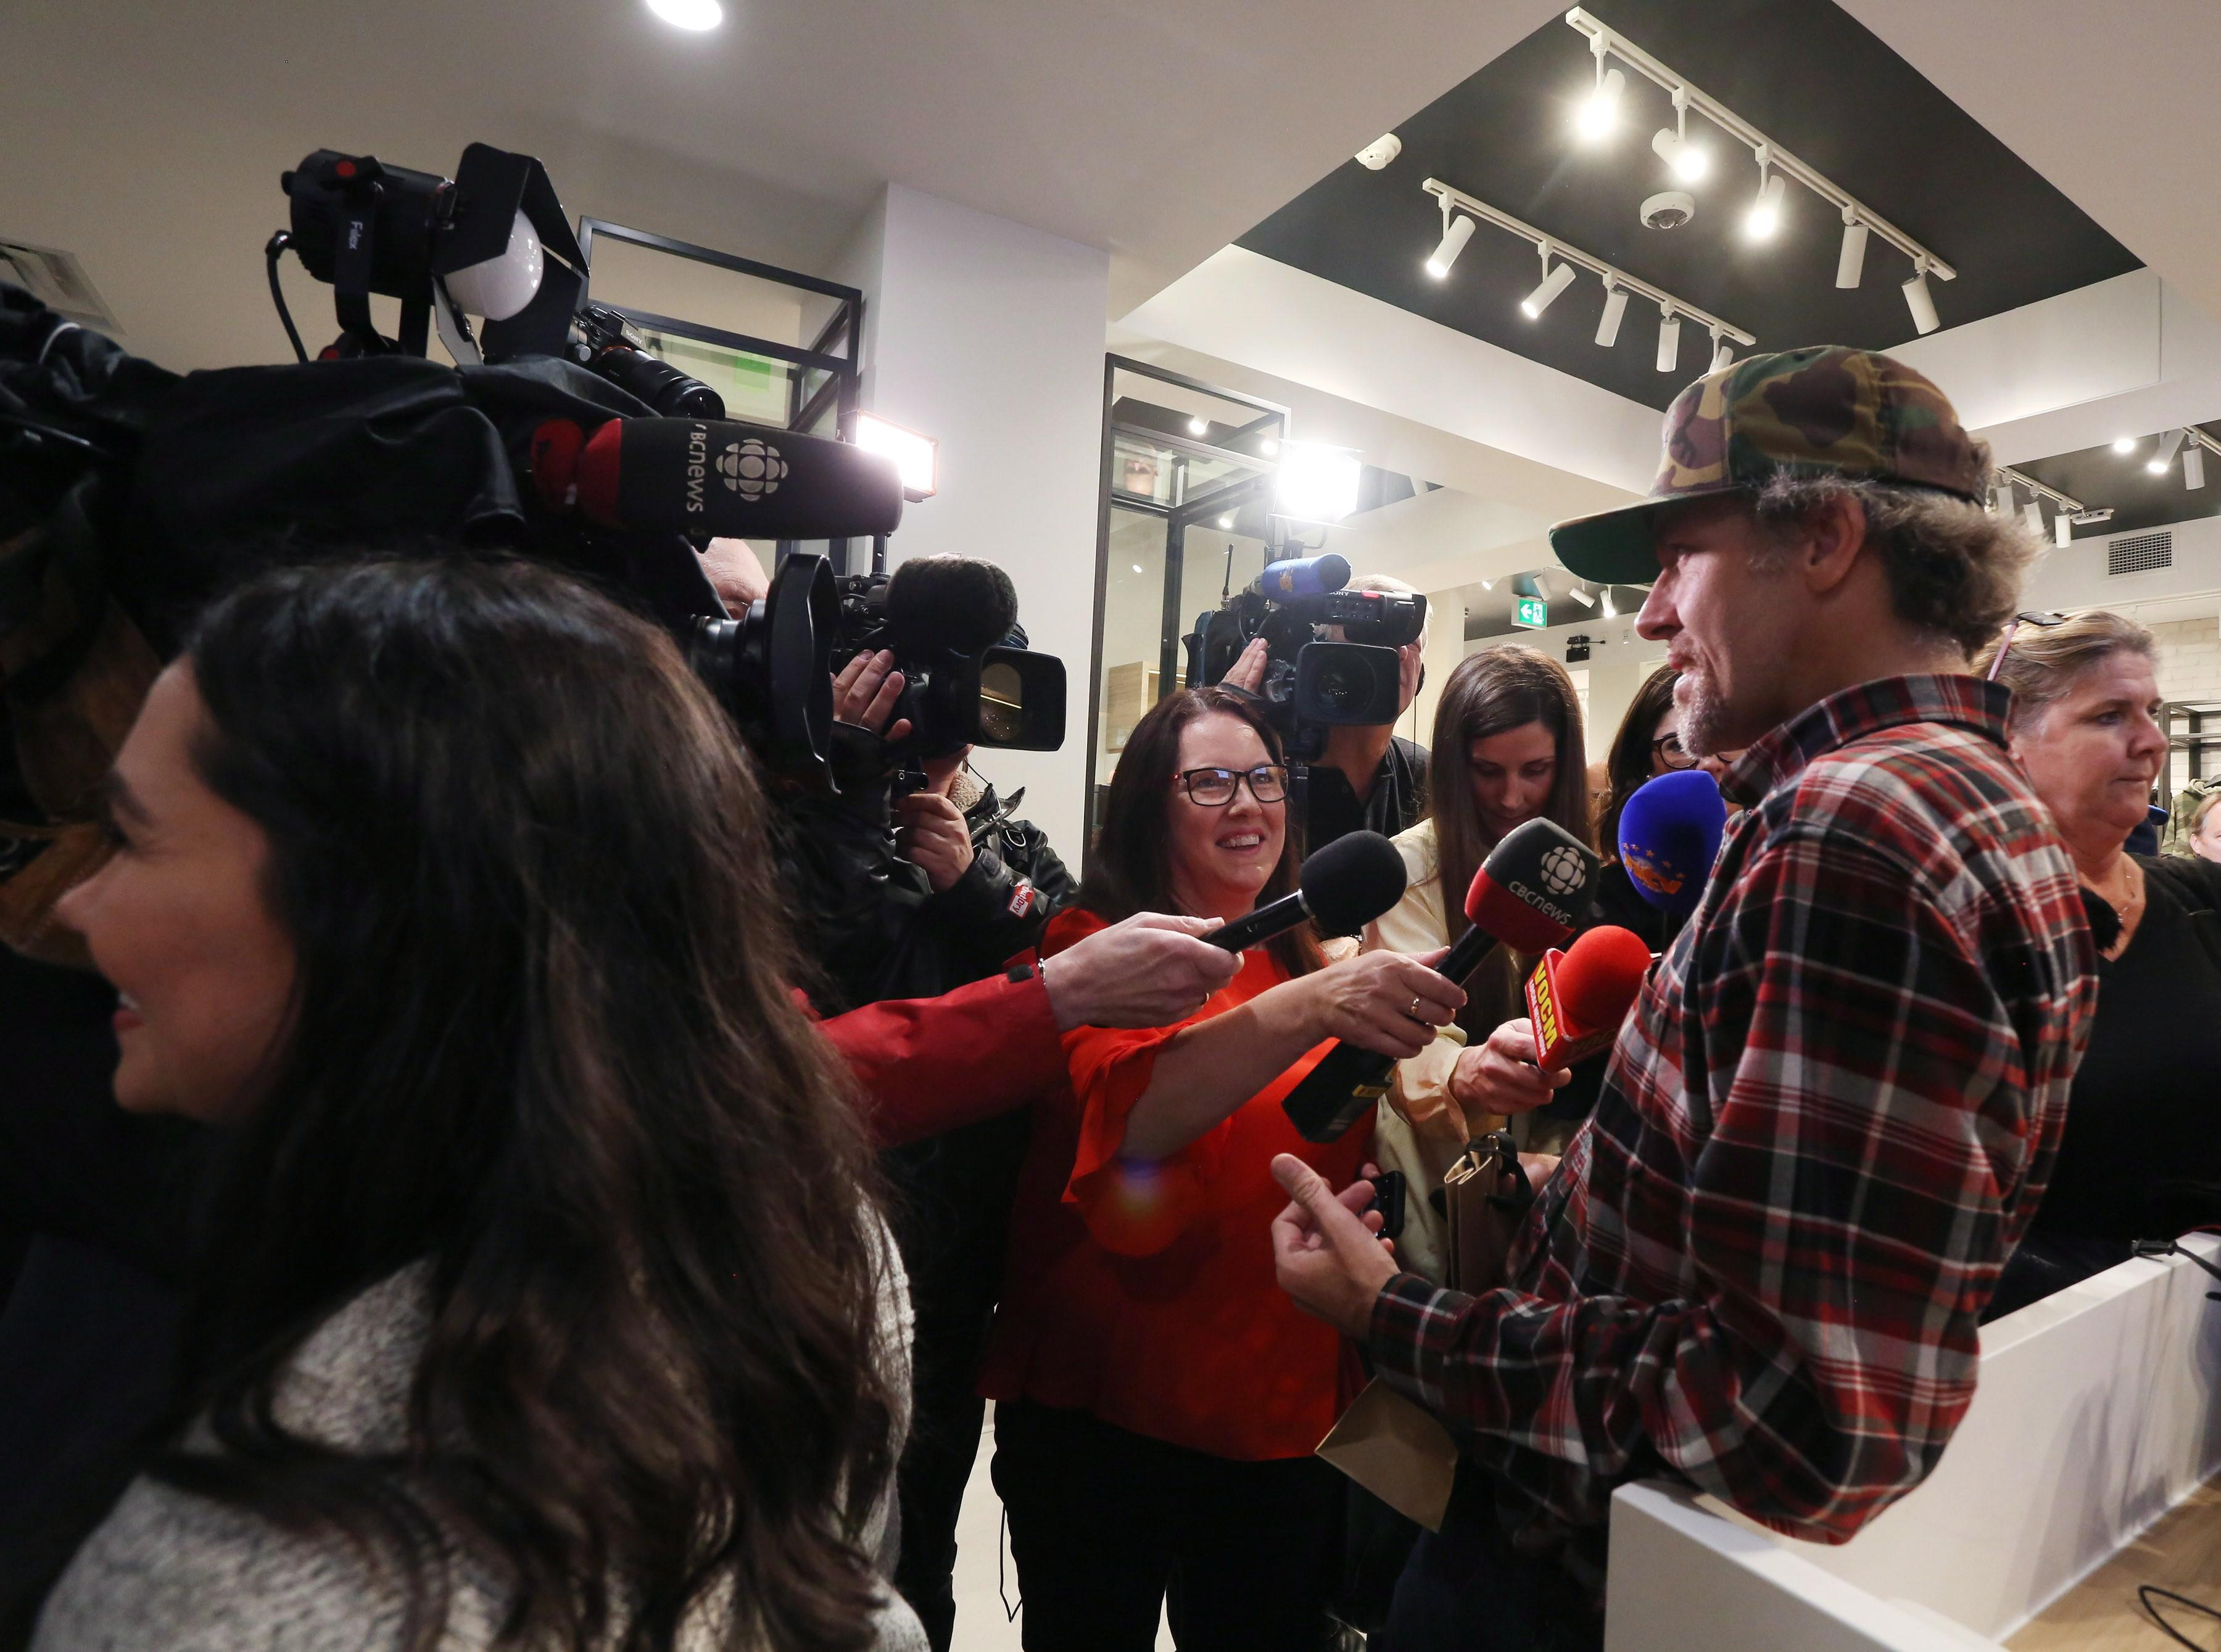 <p>Ian Power talks with the media at the Tweed shop on Water Street in St. John's N.L. following his purchase of the first legal marijuana for recreational use in Canada at 12:01am local time on Wednesday October 17, 2018.<br>(Photo from Paul Daly, The Canadian Press) </p>